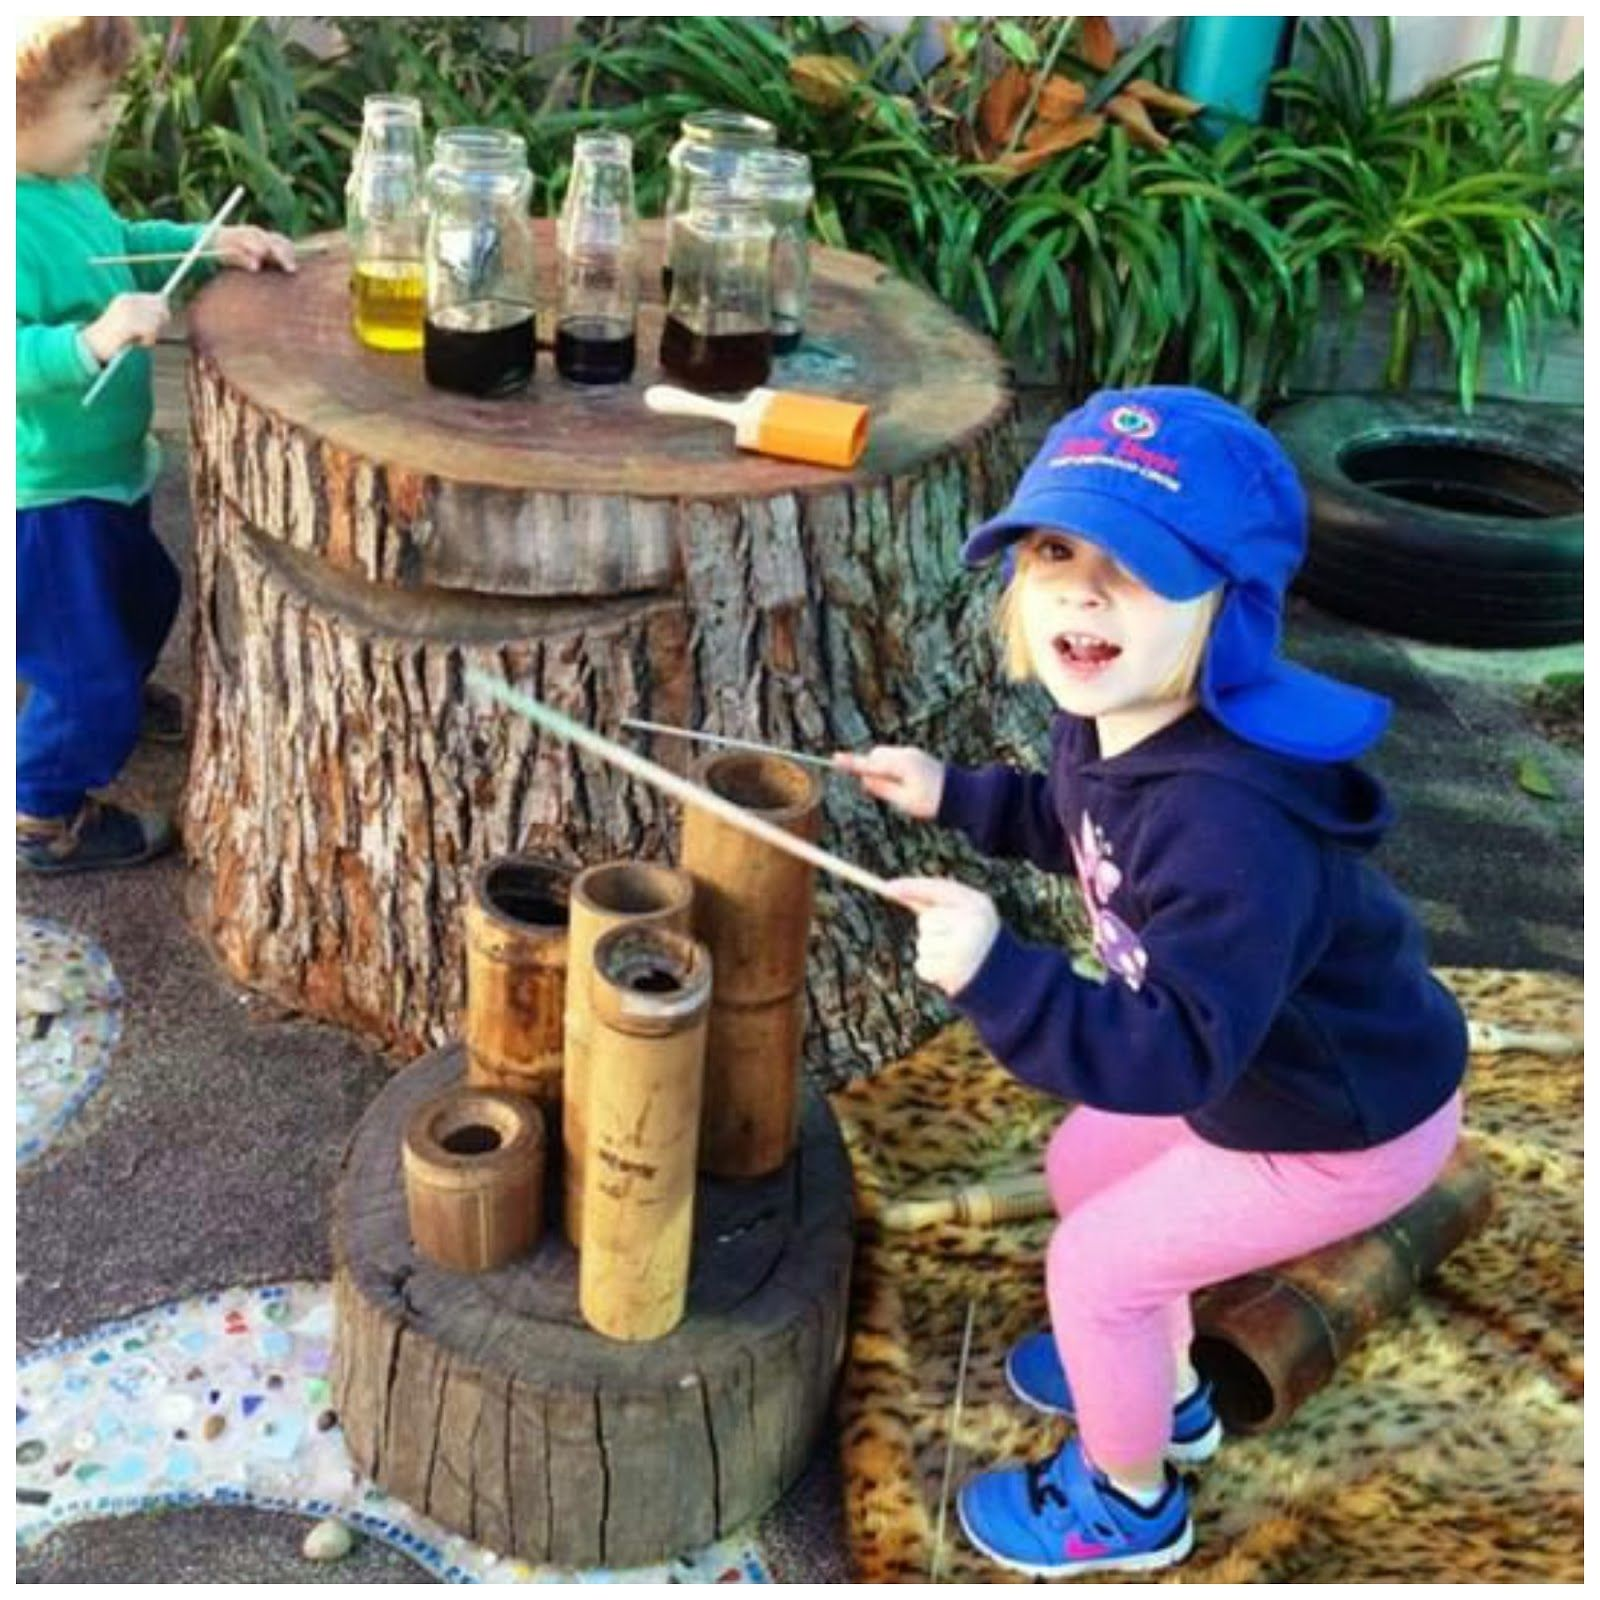 Kinder Garden: A Blog About Preschool, Play, Early Childhood Education